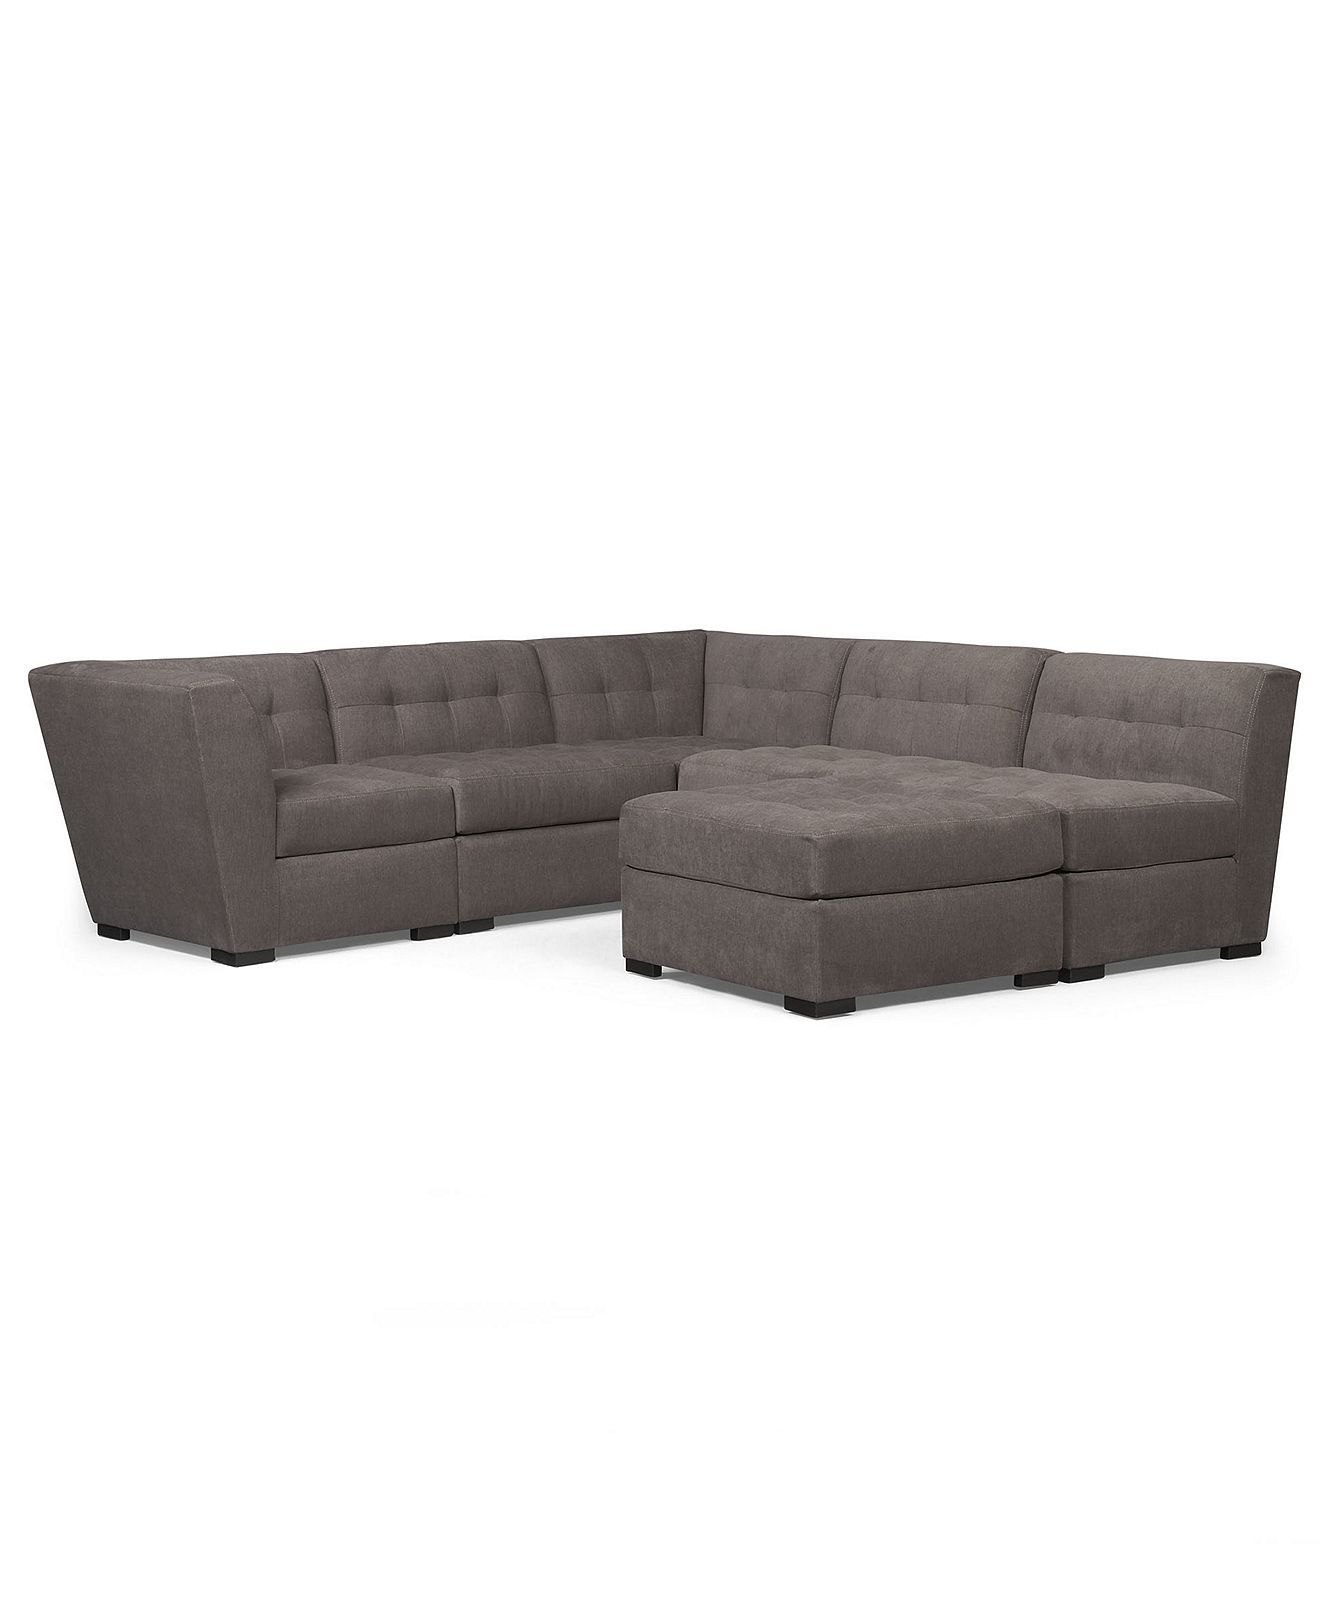 Best Roxanne Fabric Modular Sectional Sofa 6 Piece 2 Square 400 x 300